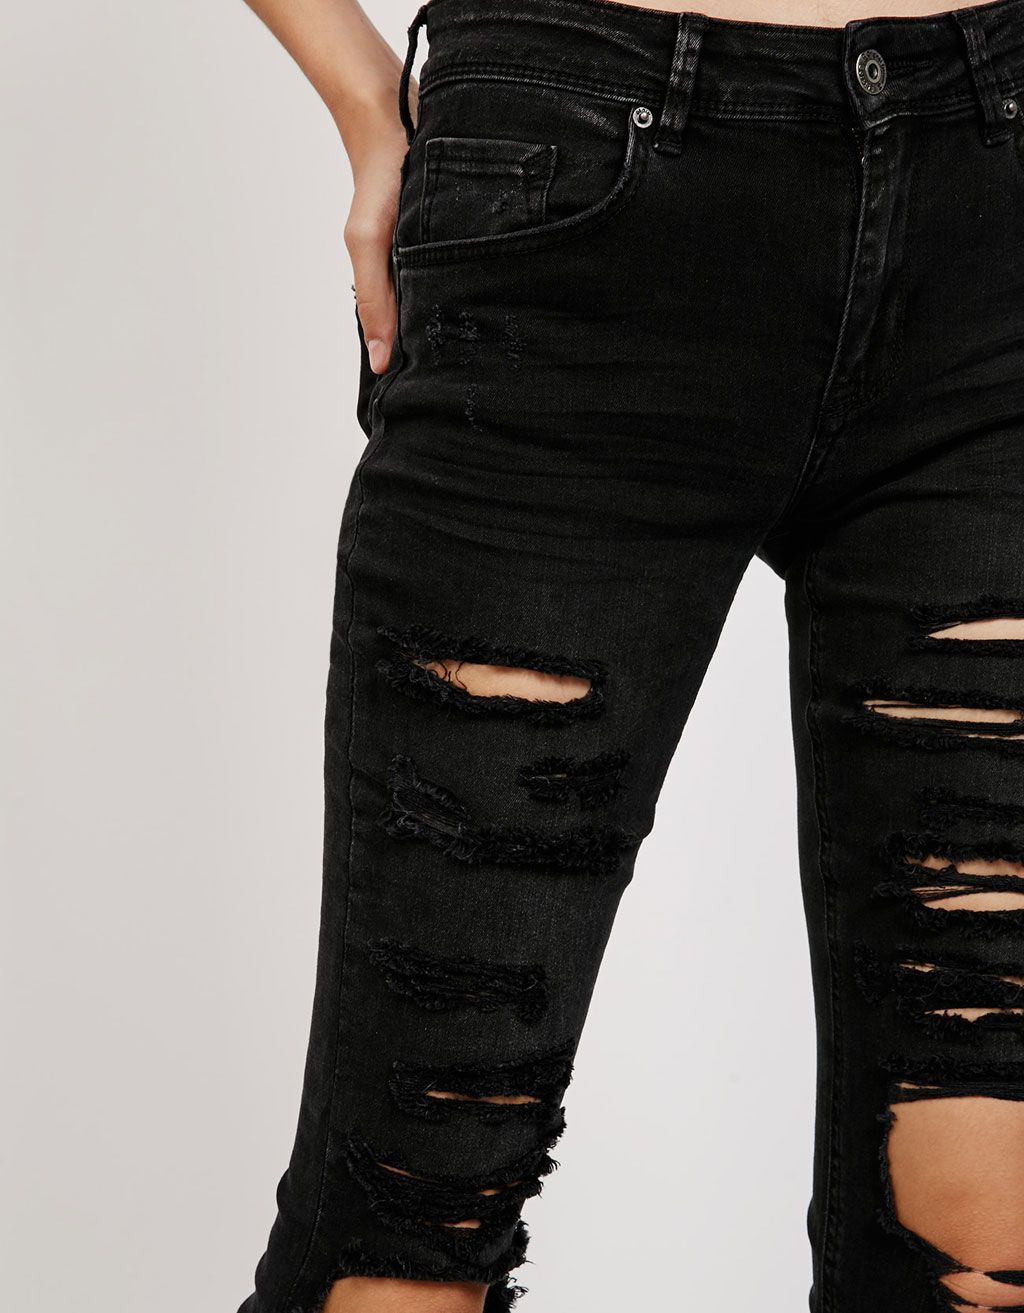 e76b657568986 Bershka France - Jean slim déchiré   Mode   Pinterest   Jeans slim ...